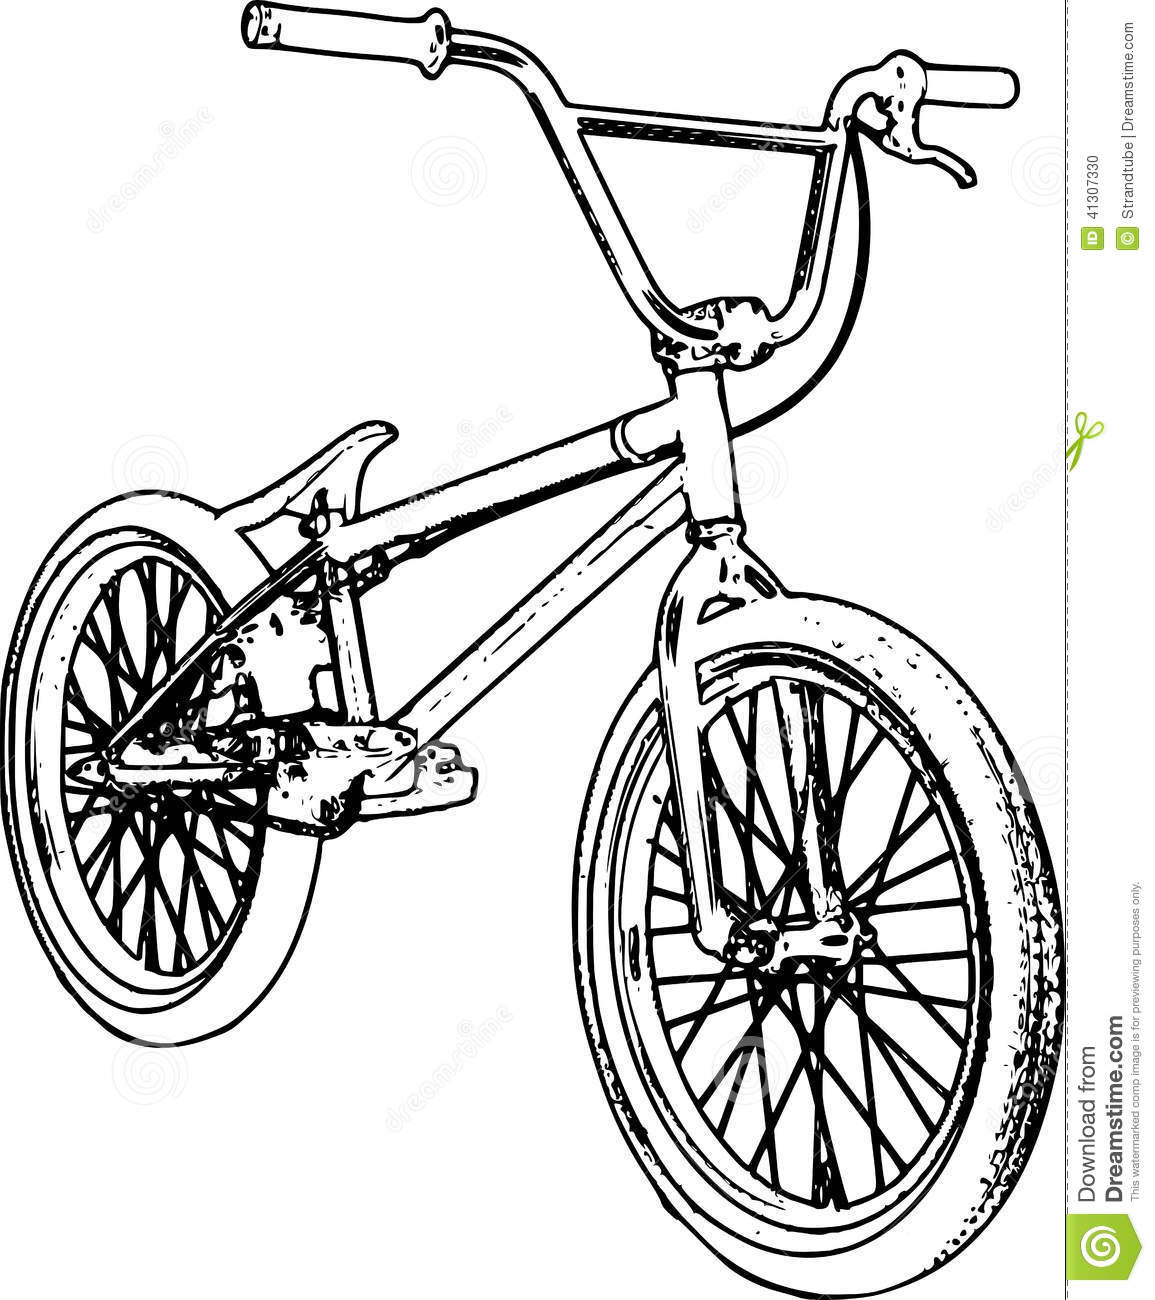 19 bmx bikes drawings Colouring Pages